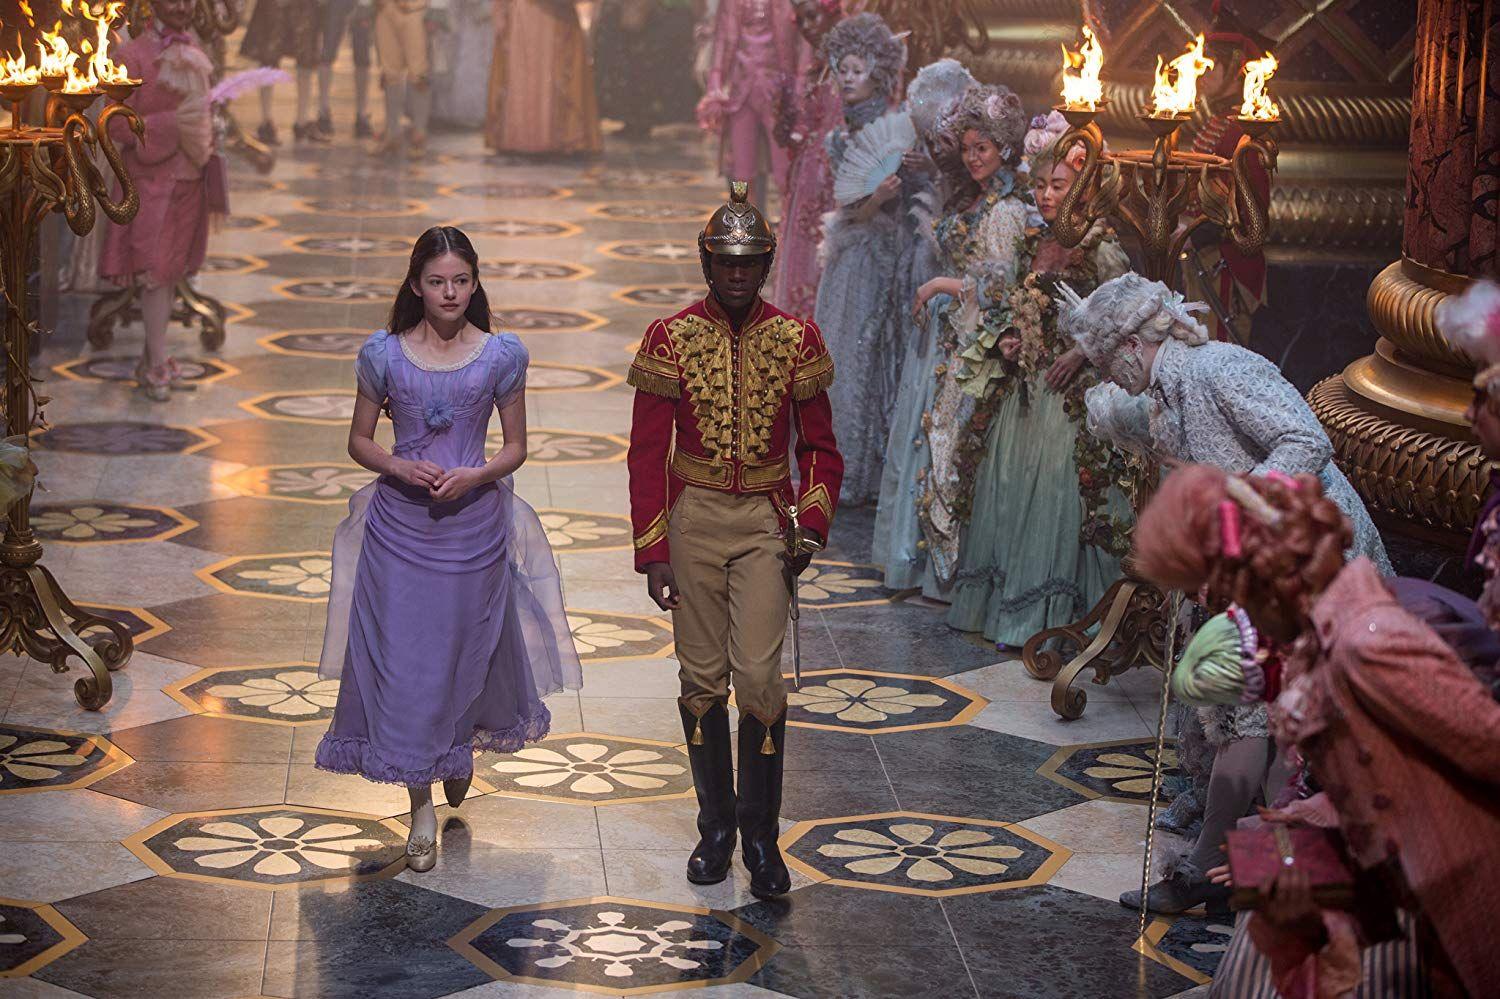 Clara Stalbaum (Mackenzie Foy and The Nutcracker Captain (Jayden Fowora Knight) in The Nutcracker and the Four Realms (2018)